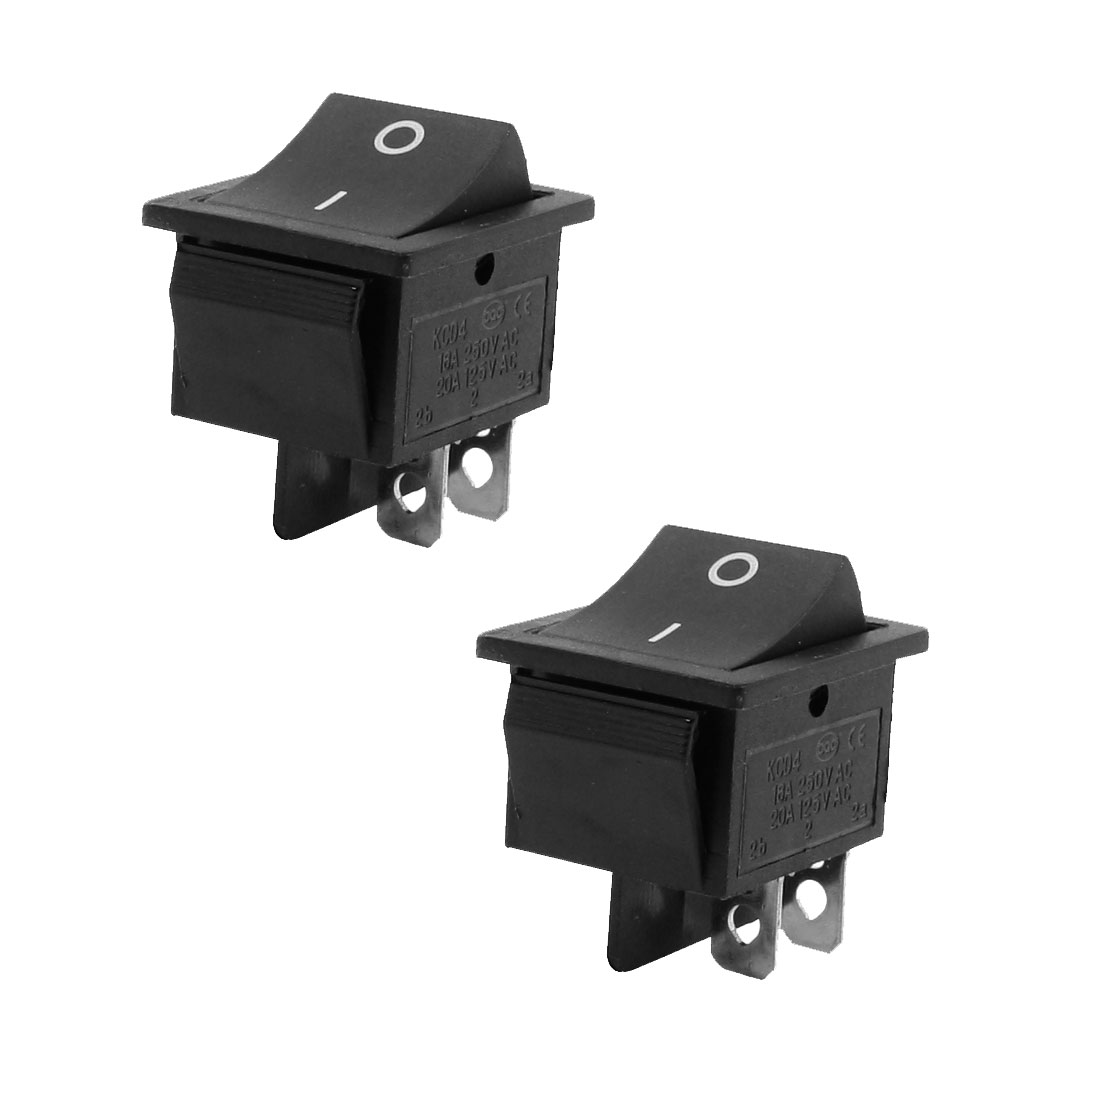 16A 250VAC 20A 125VAC 2 Position 4 Pin ON/OFF DPST Boat Rocker Switch 2 Pcs